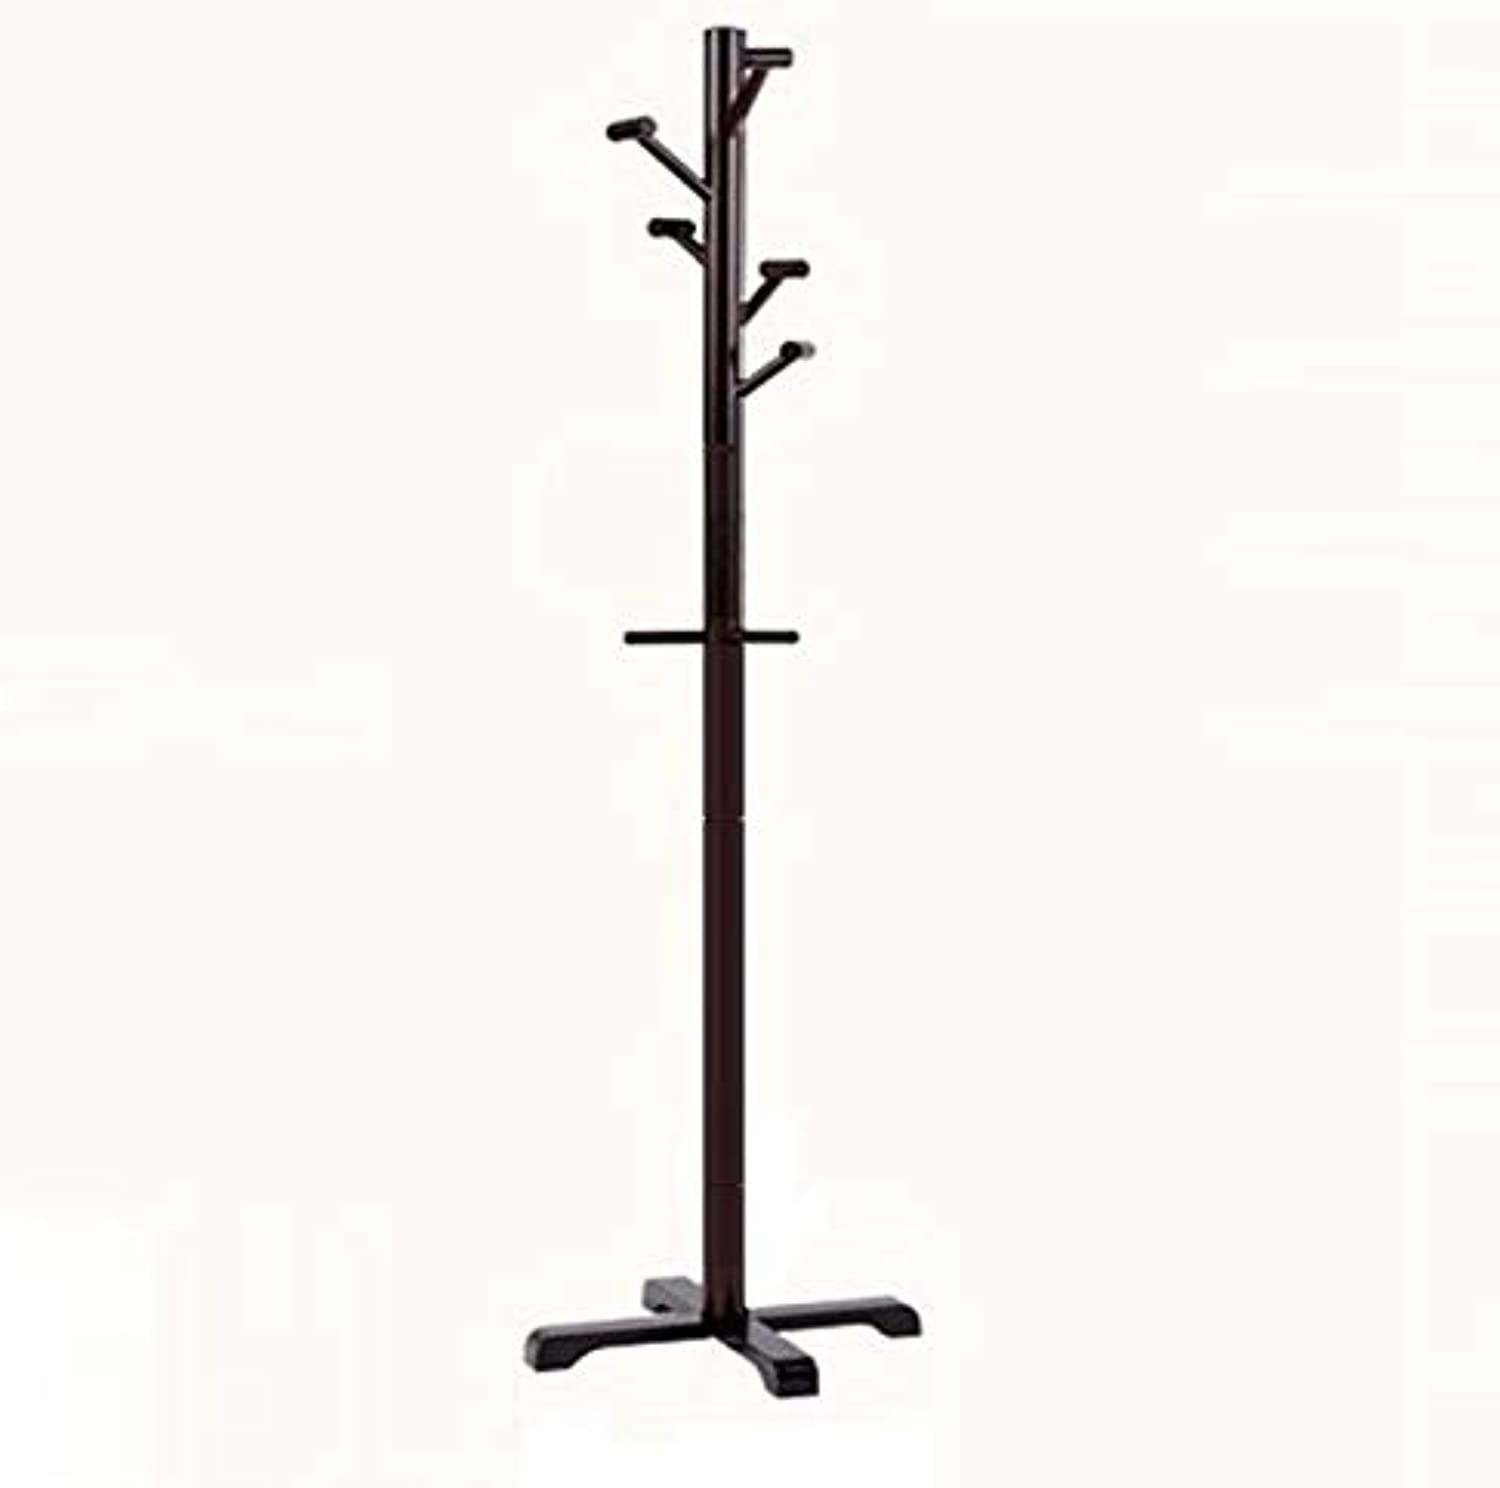 Coat Rack Coat Rack Stand,Coat Rack Coat Hat Stand Garment Rack, Detachable Multifunction Wood greenical Coat Rack, Tree Creative Bedroom Living Room Study,B,50  178cm